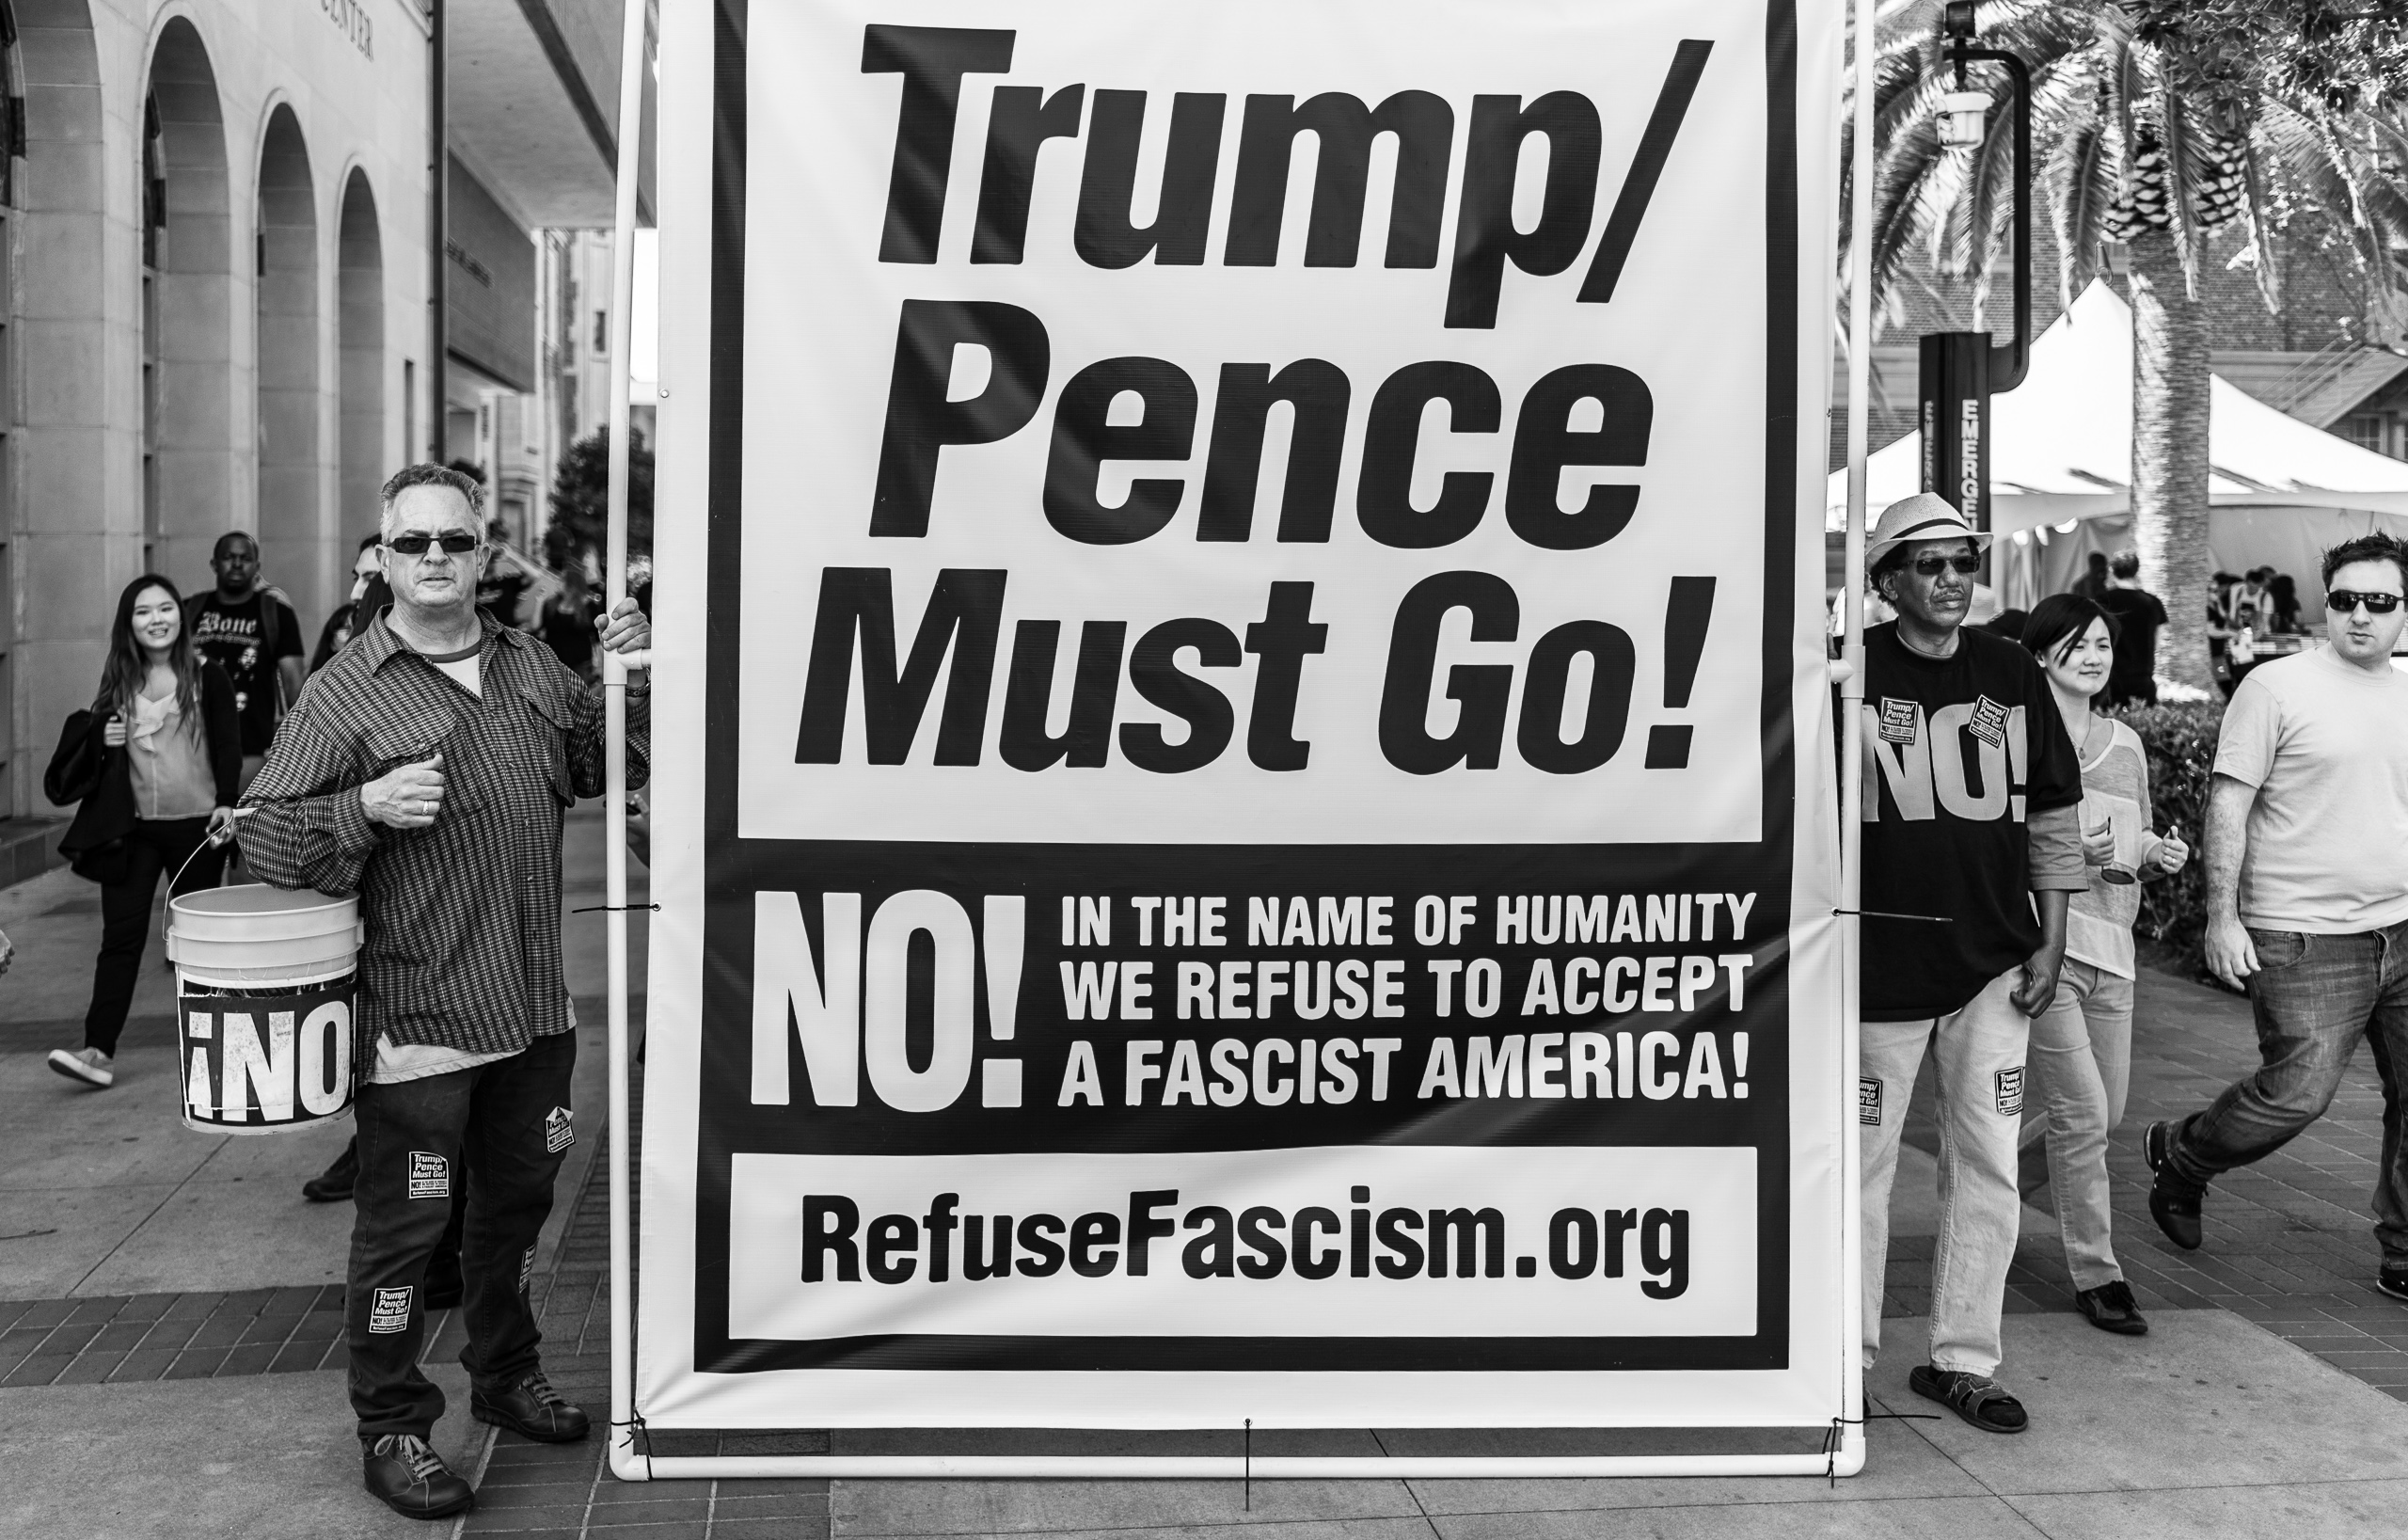 """Two men hold a large sign reading """"Trump / Pence Must Go! No! In the name of humanity we refuse to accept a fascist America! RefuseFascism.org"""